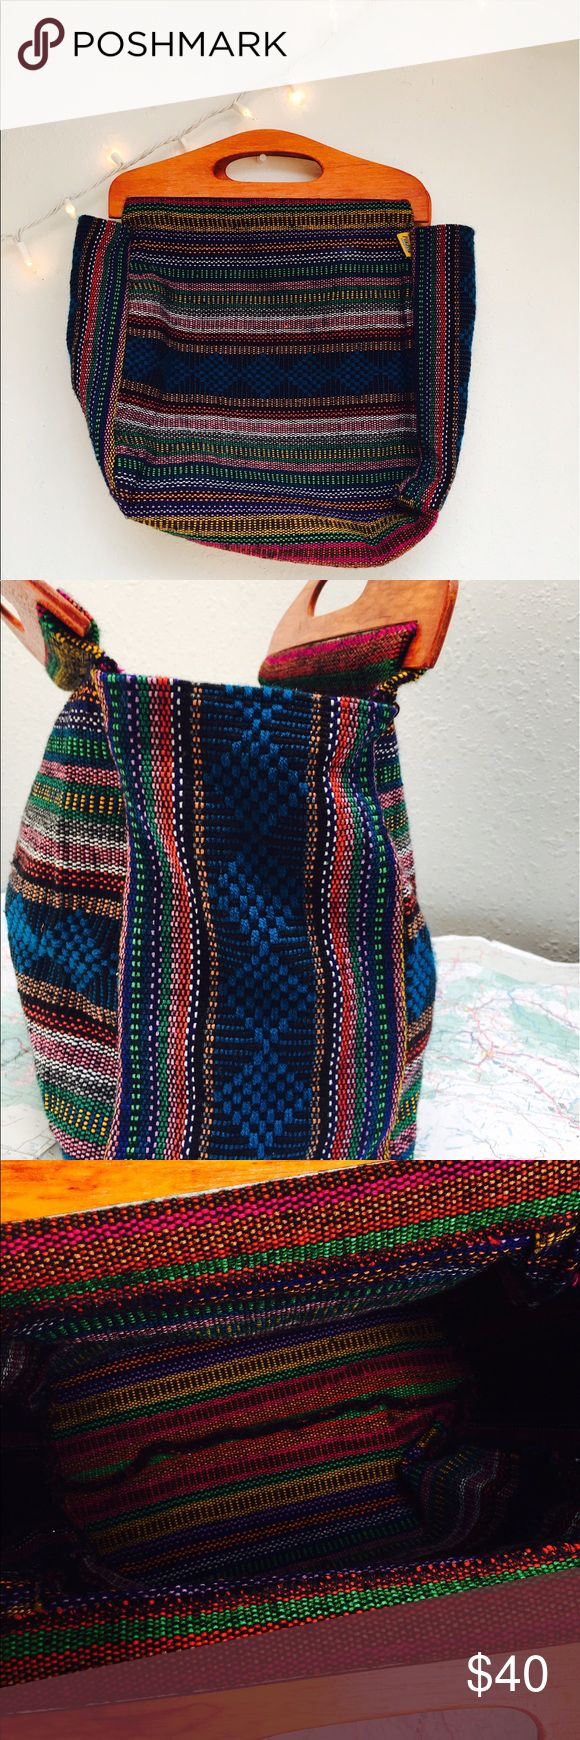 Hand woven colorful bag Colorful large hand woven bag from Mexico. This type of bag requires up to weeks to make in a wooden weaving structure. This was purchased from a women whose full time occupation is making bags like this one in Cuetzalan, Estado de Puebla, Mexico. Bags Totes